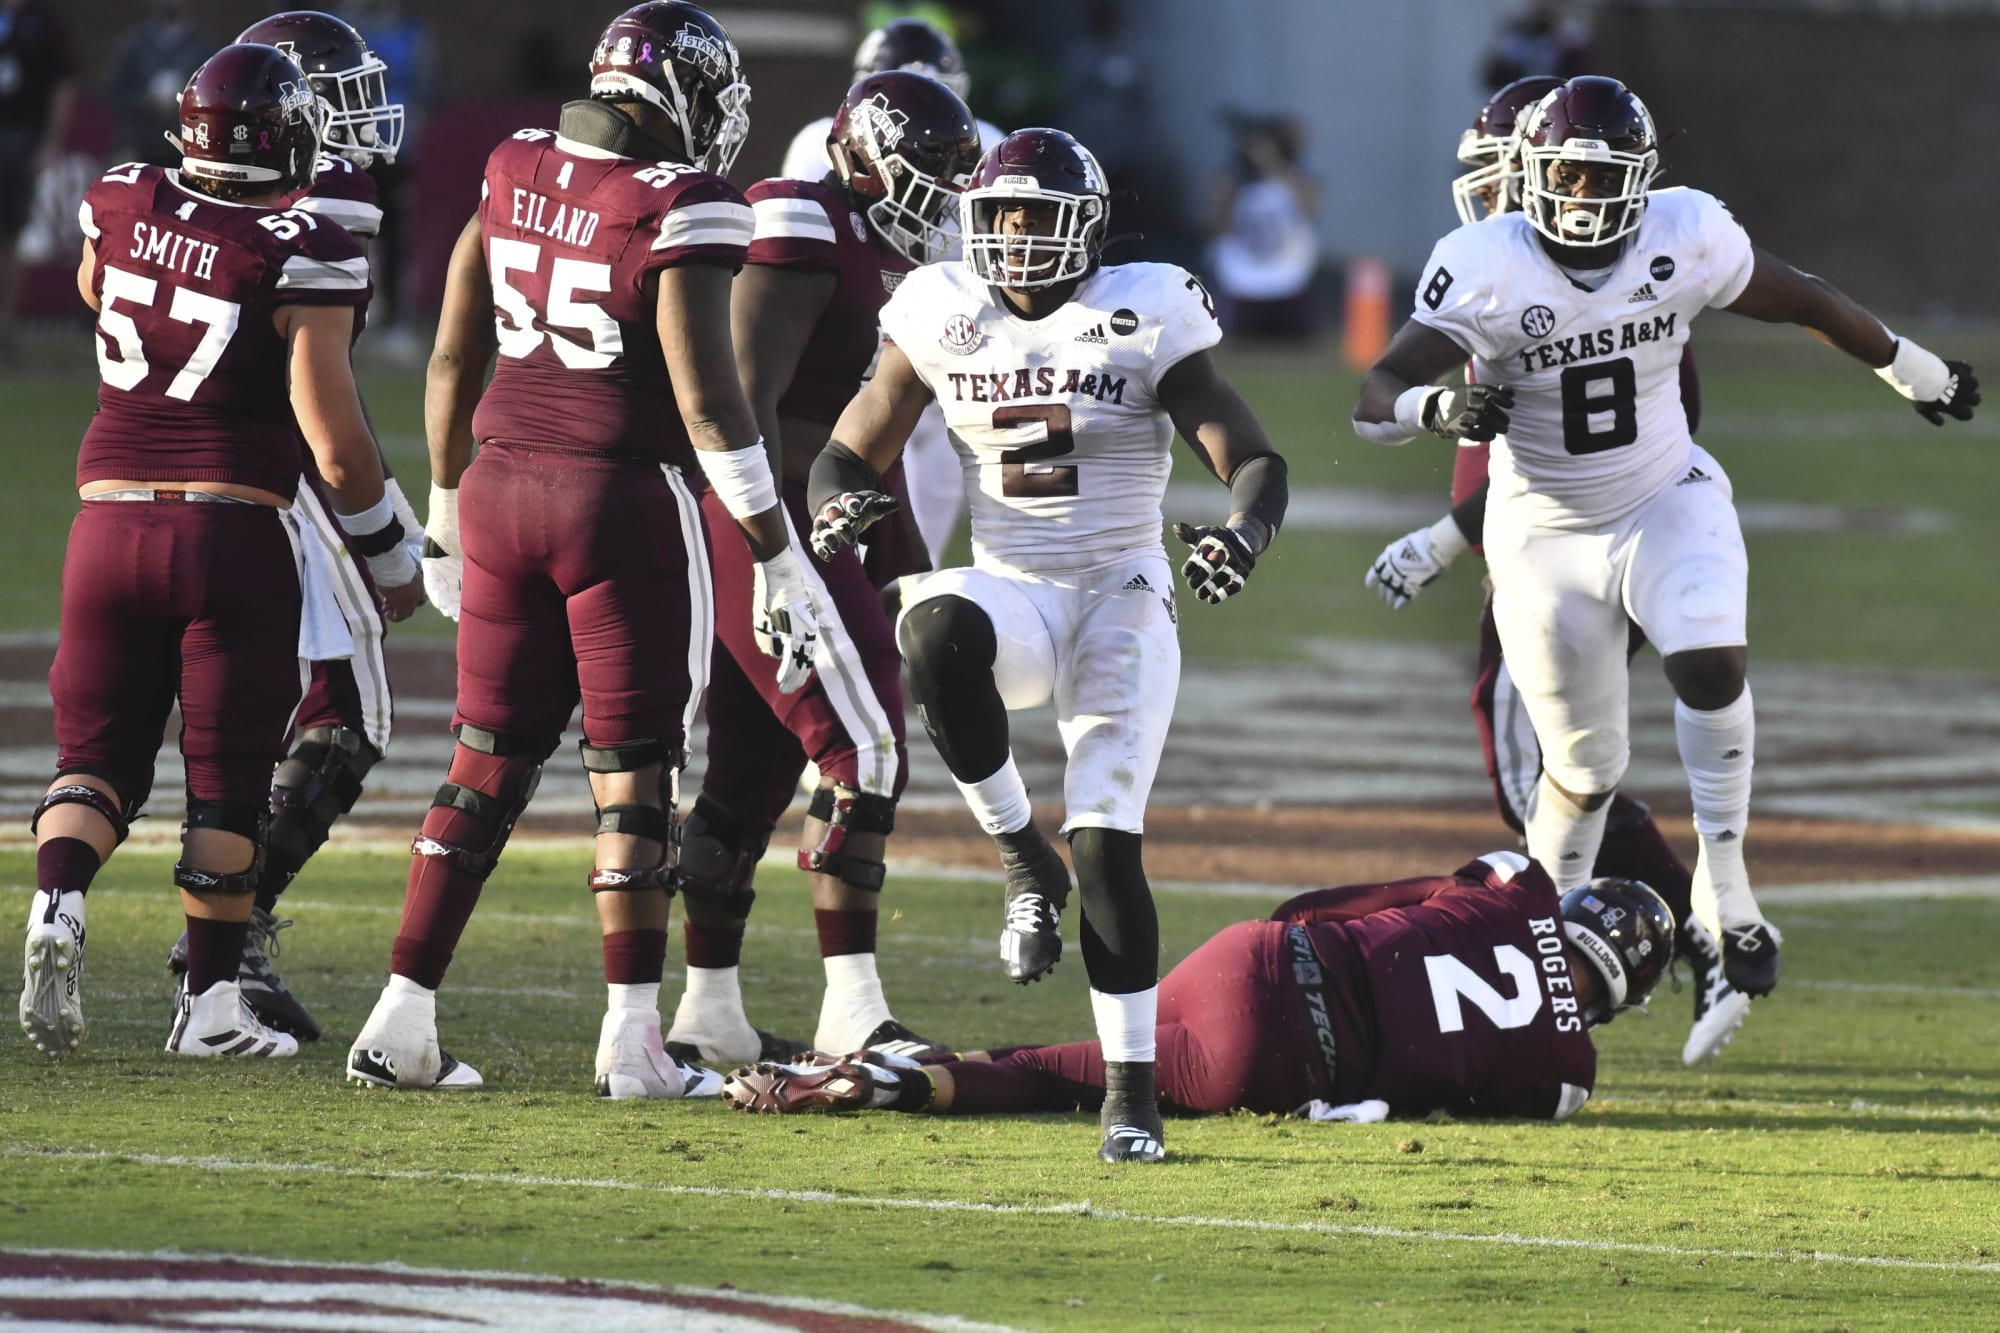 Texas A&M Football: Ranking 3 toughest opponents on 2021 schedule